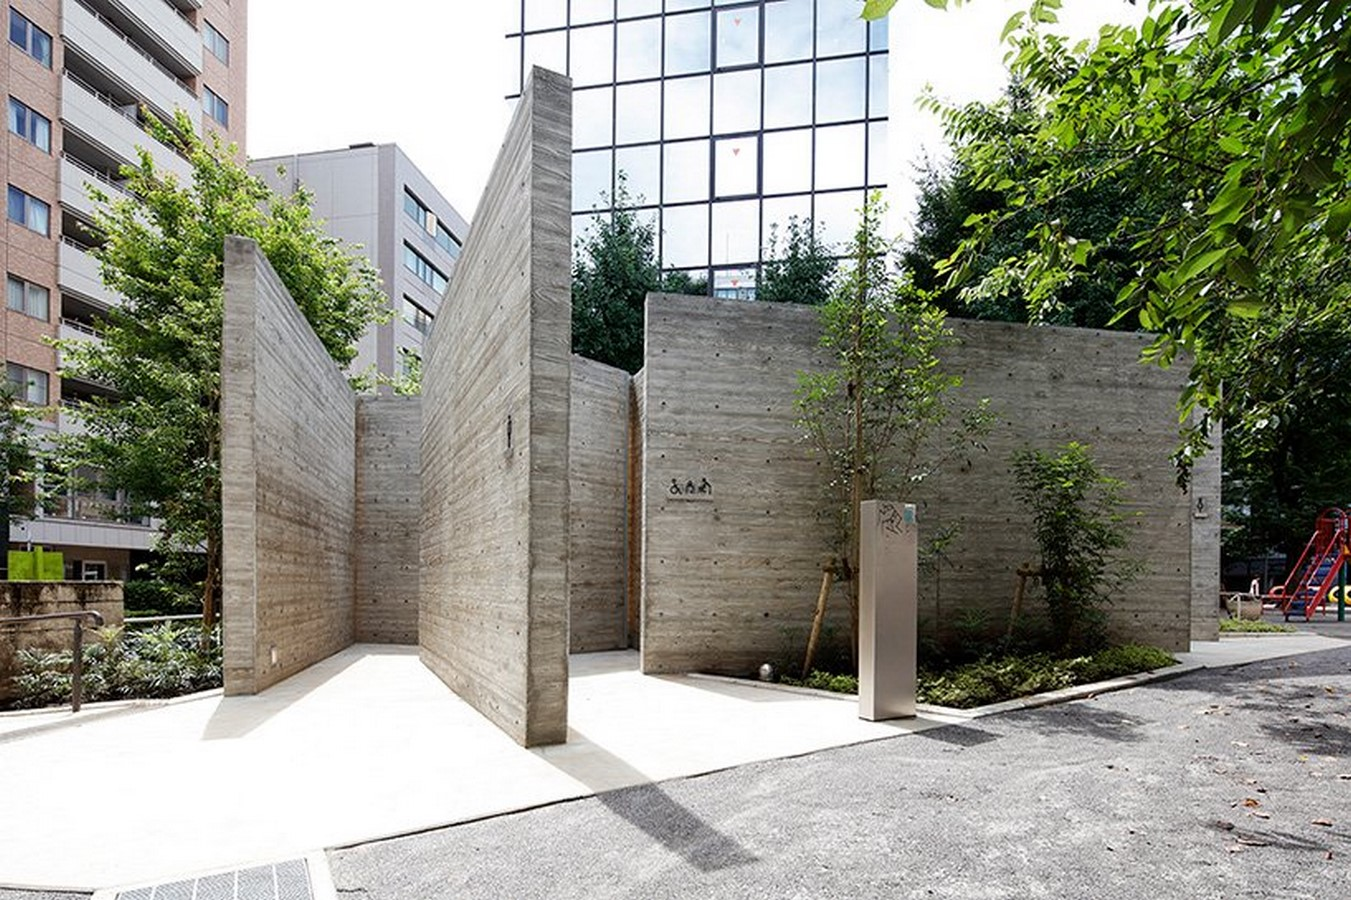 Concrete Tokyo toilet designed by Wonderwall references primitive Japanese huts - Sheet2